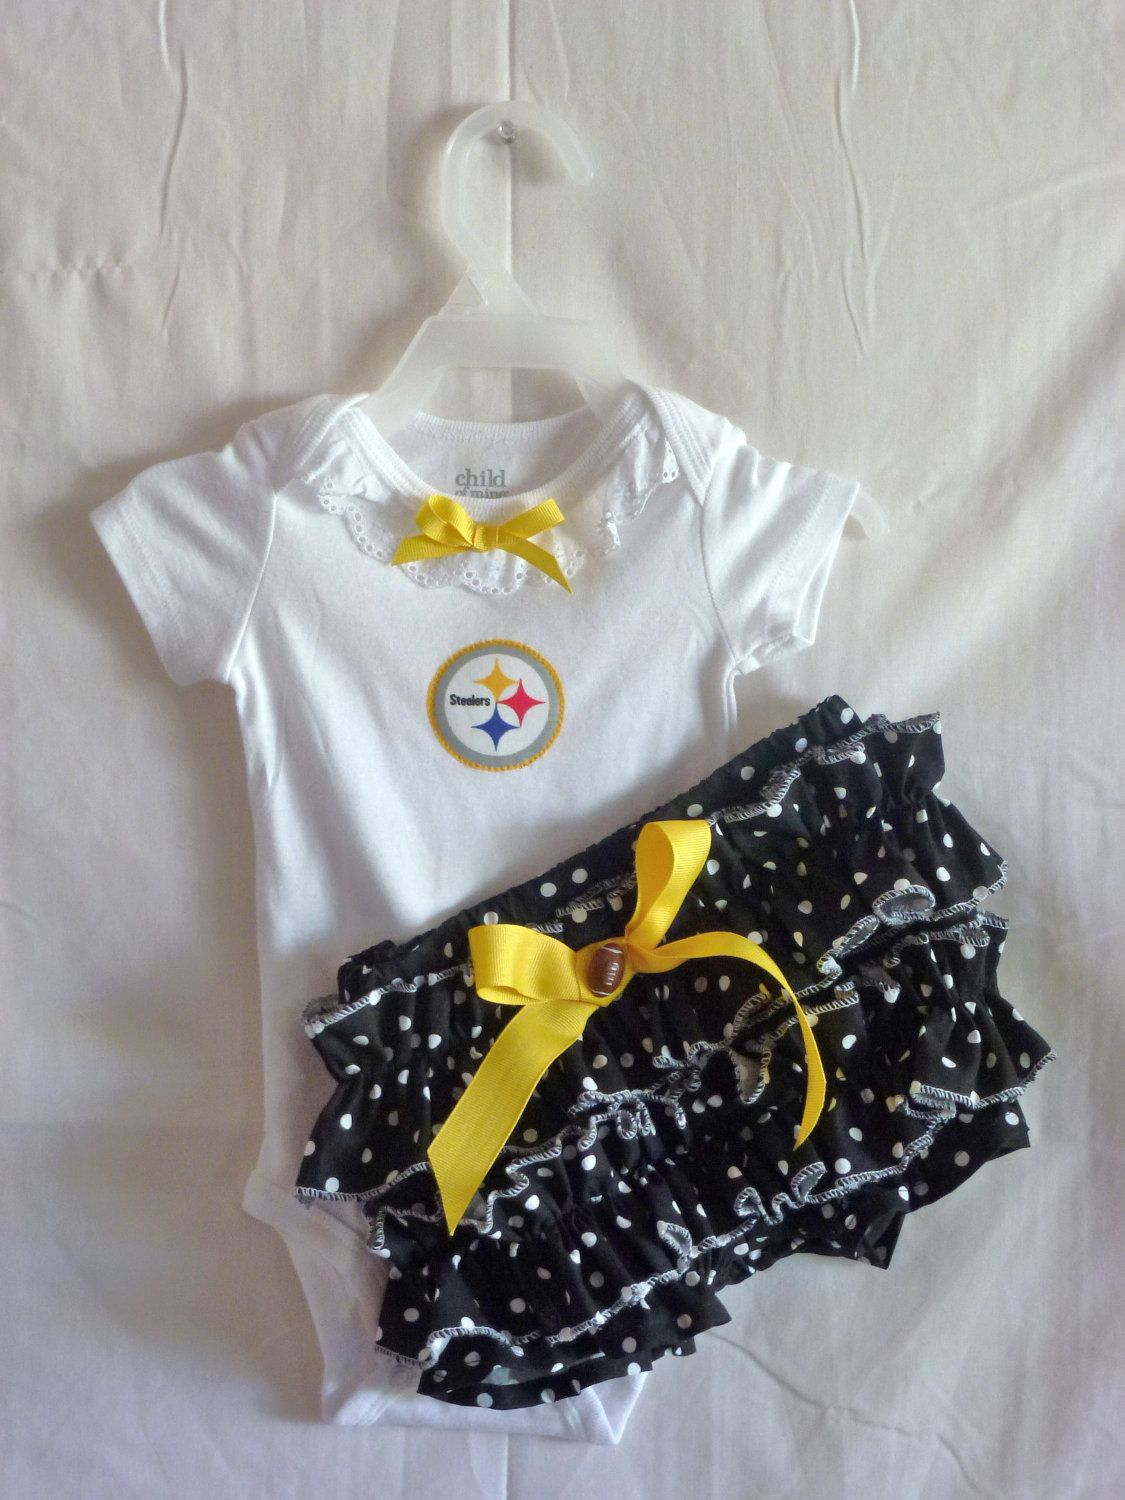 Steelers Baby Clothes Get It In Redskins Baby Girl Infant Onsie Outfit Wbloomers Sizes